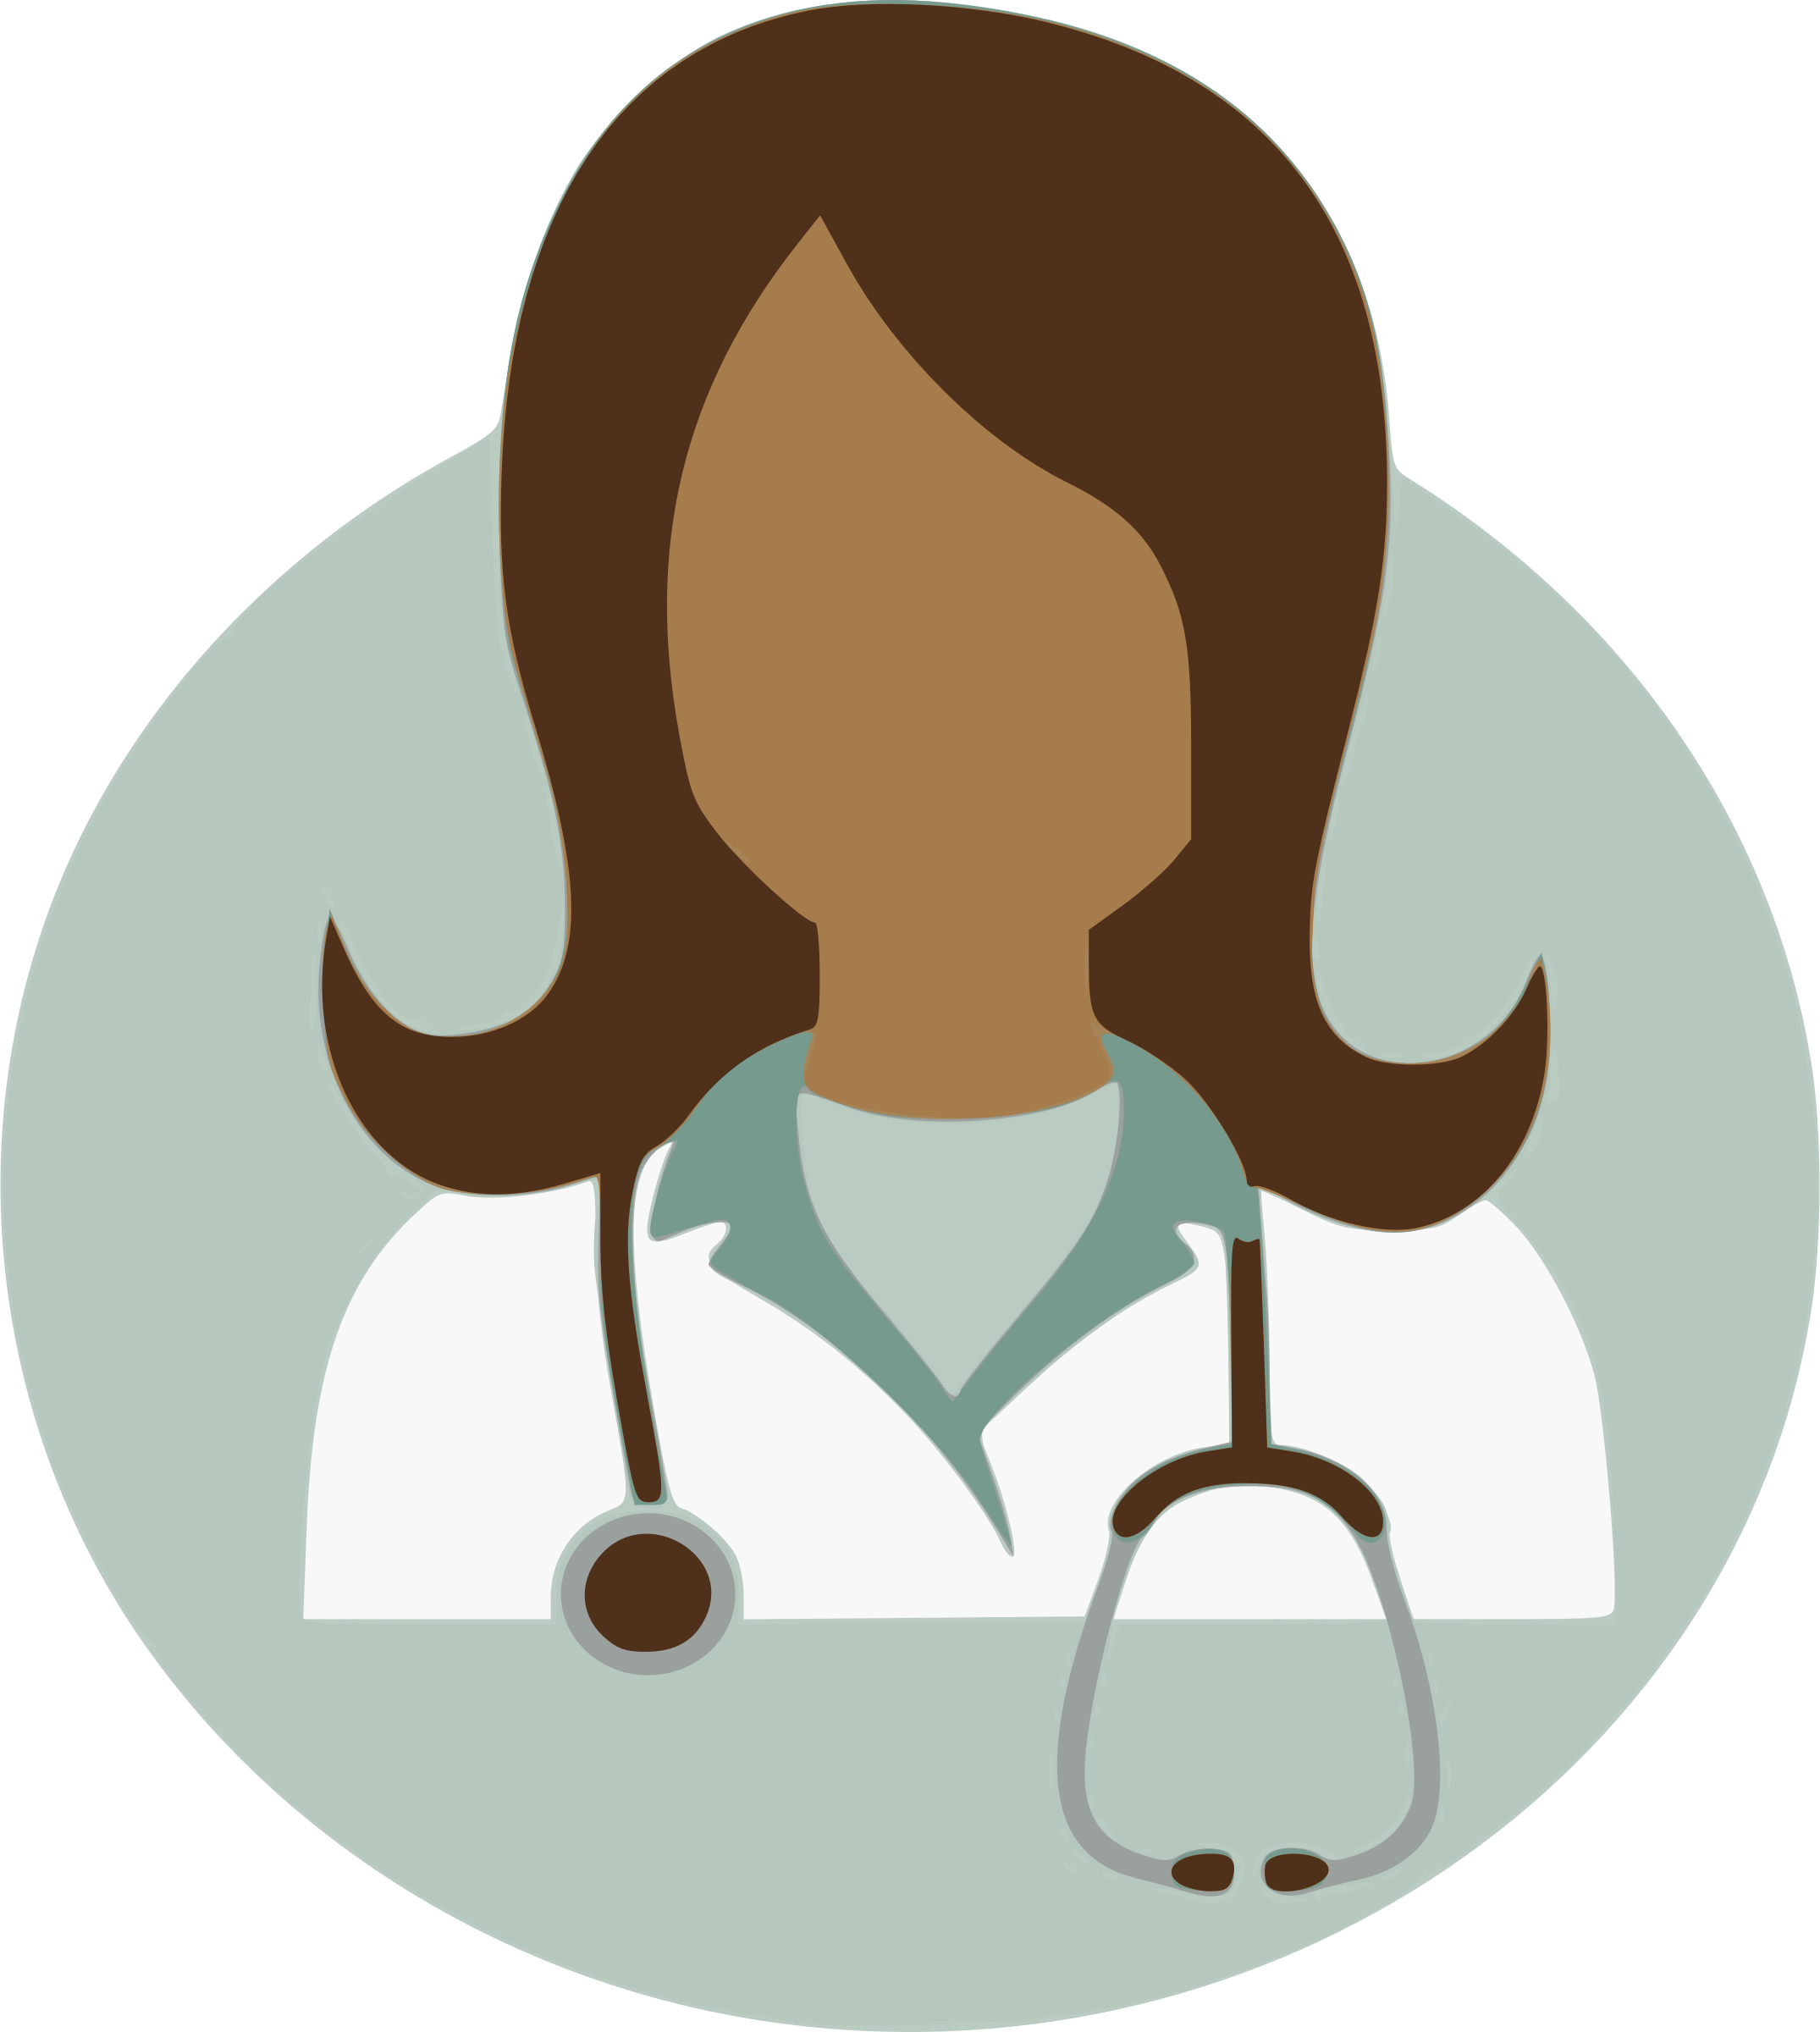 jpg royalty free Female big image png. Doctor clipart